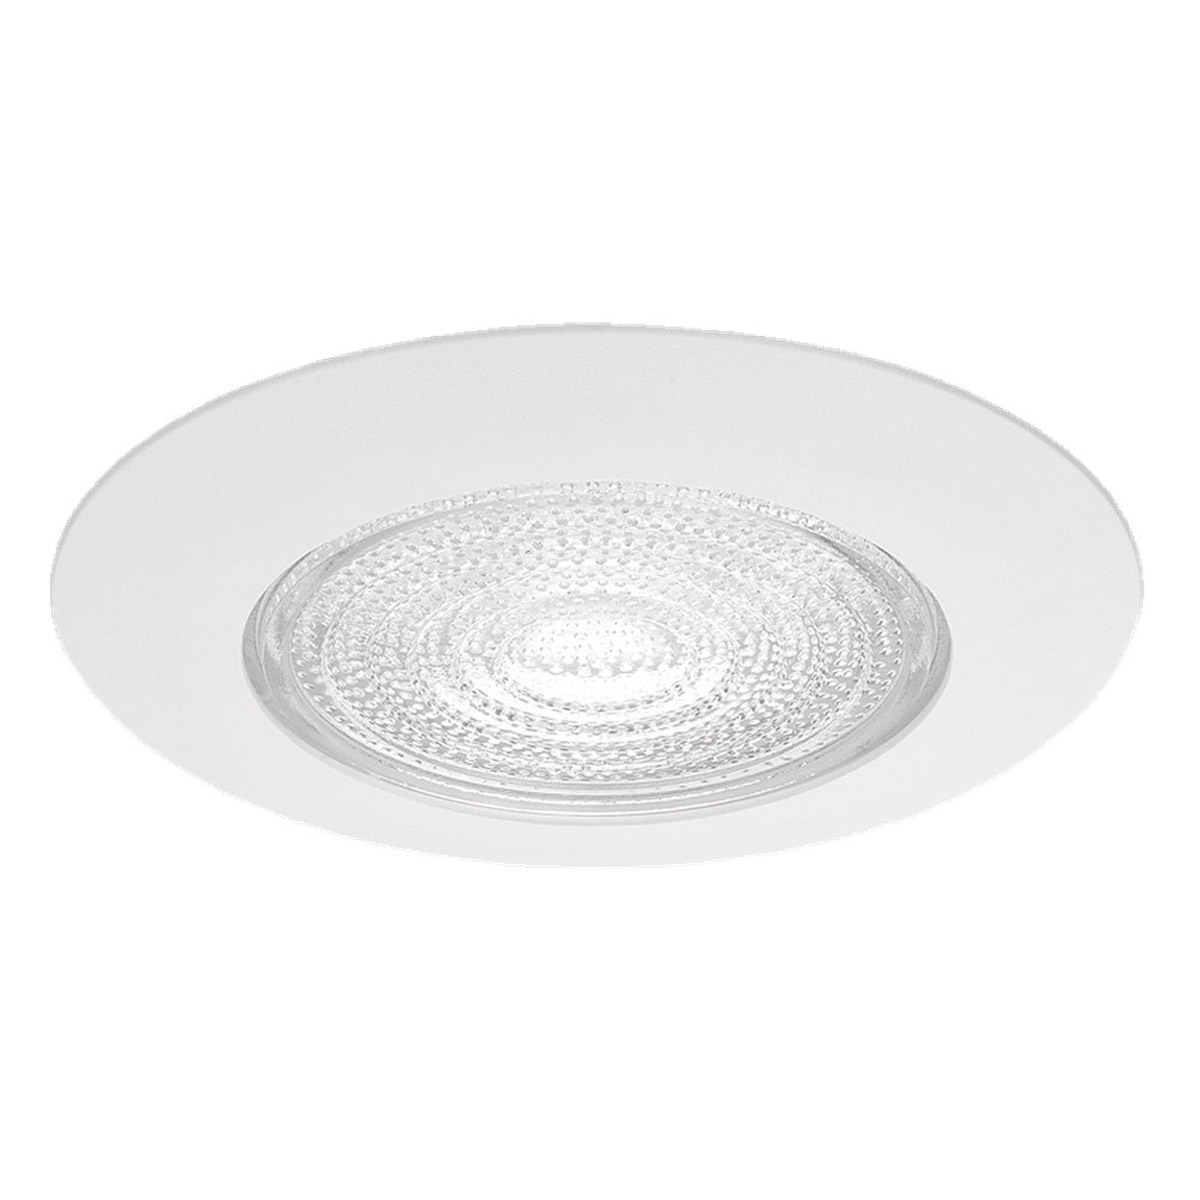 Sea Gull Lighting Signature Recessed Trim Only in White 11255AT-15